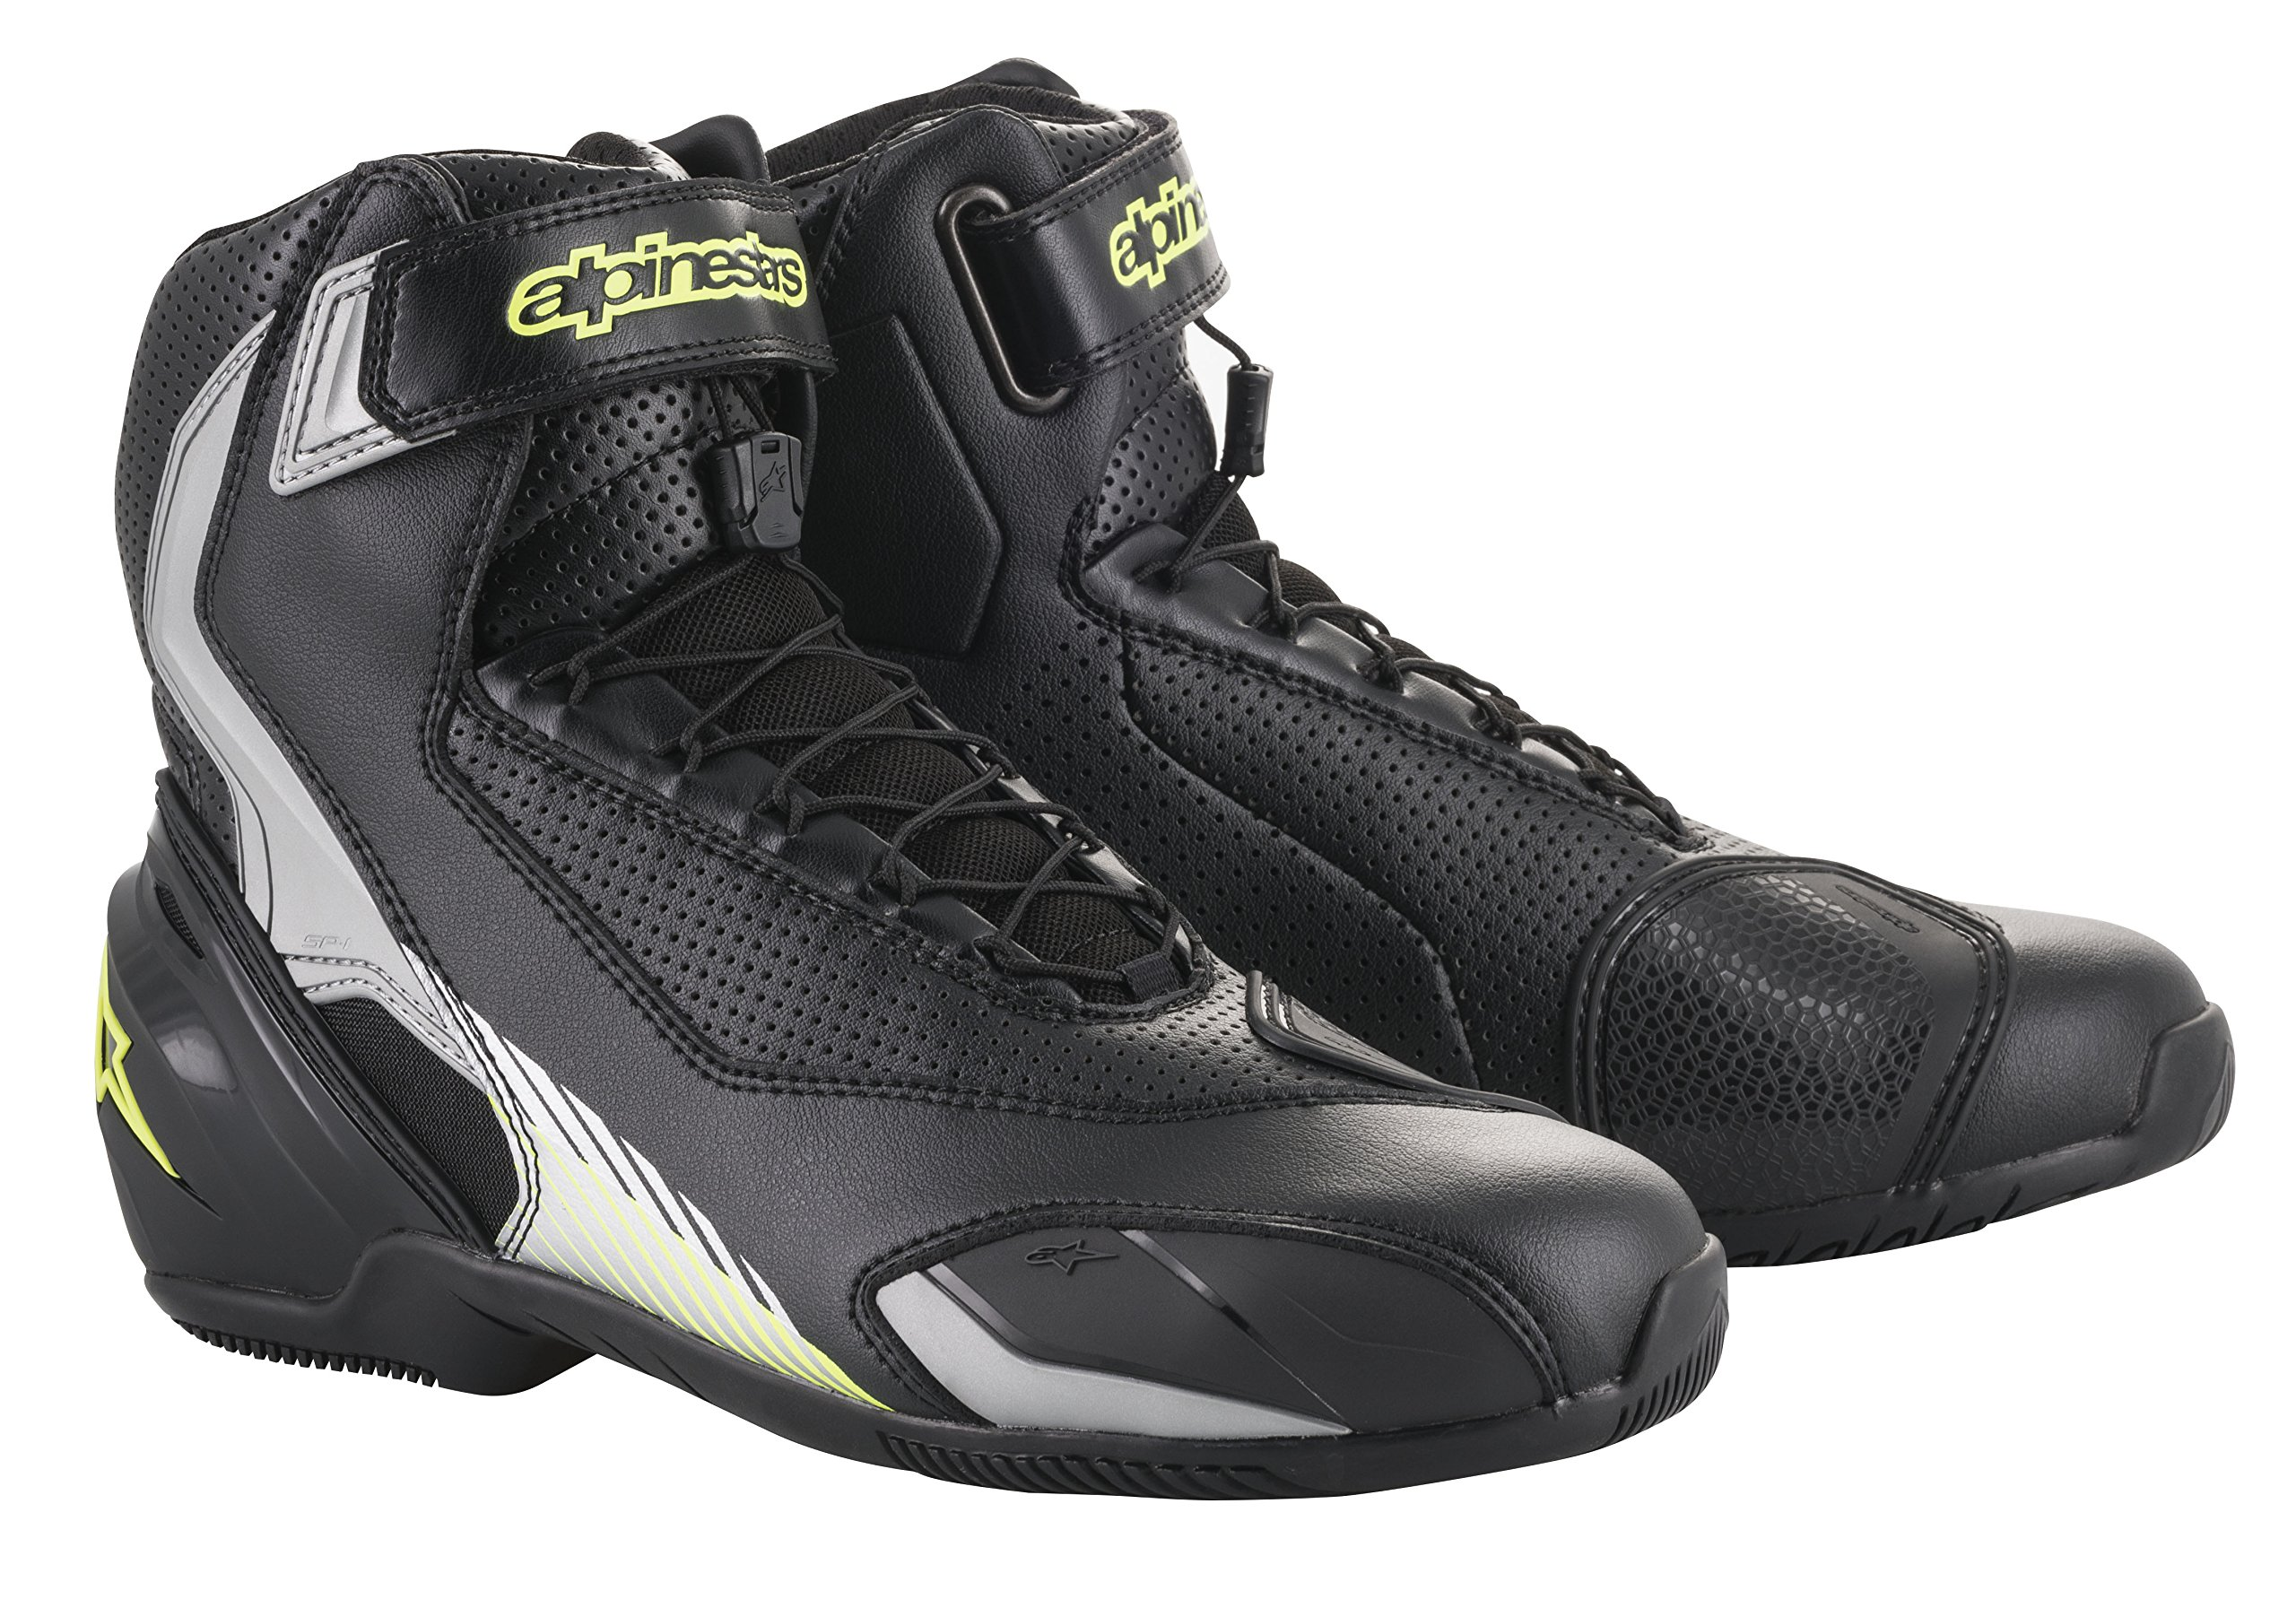 SP-1 v2 Vented Motorcycle Street Road Riding Shoe (41 EU, Black Silver Yellow)